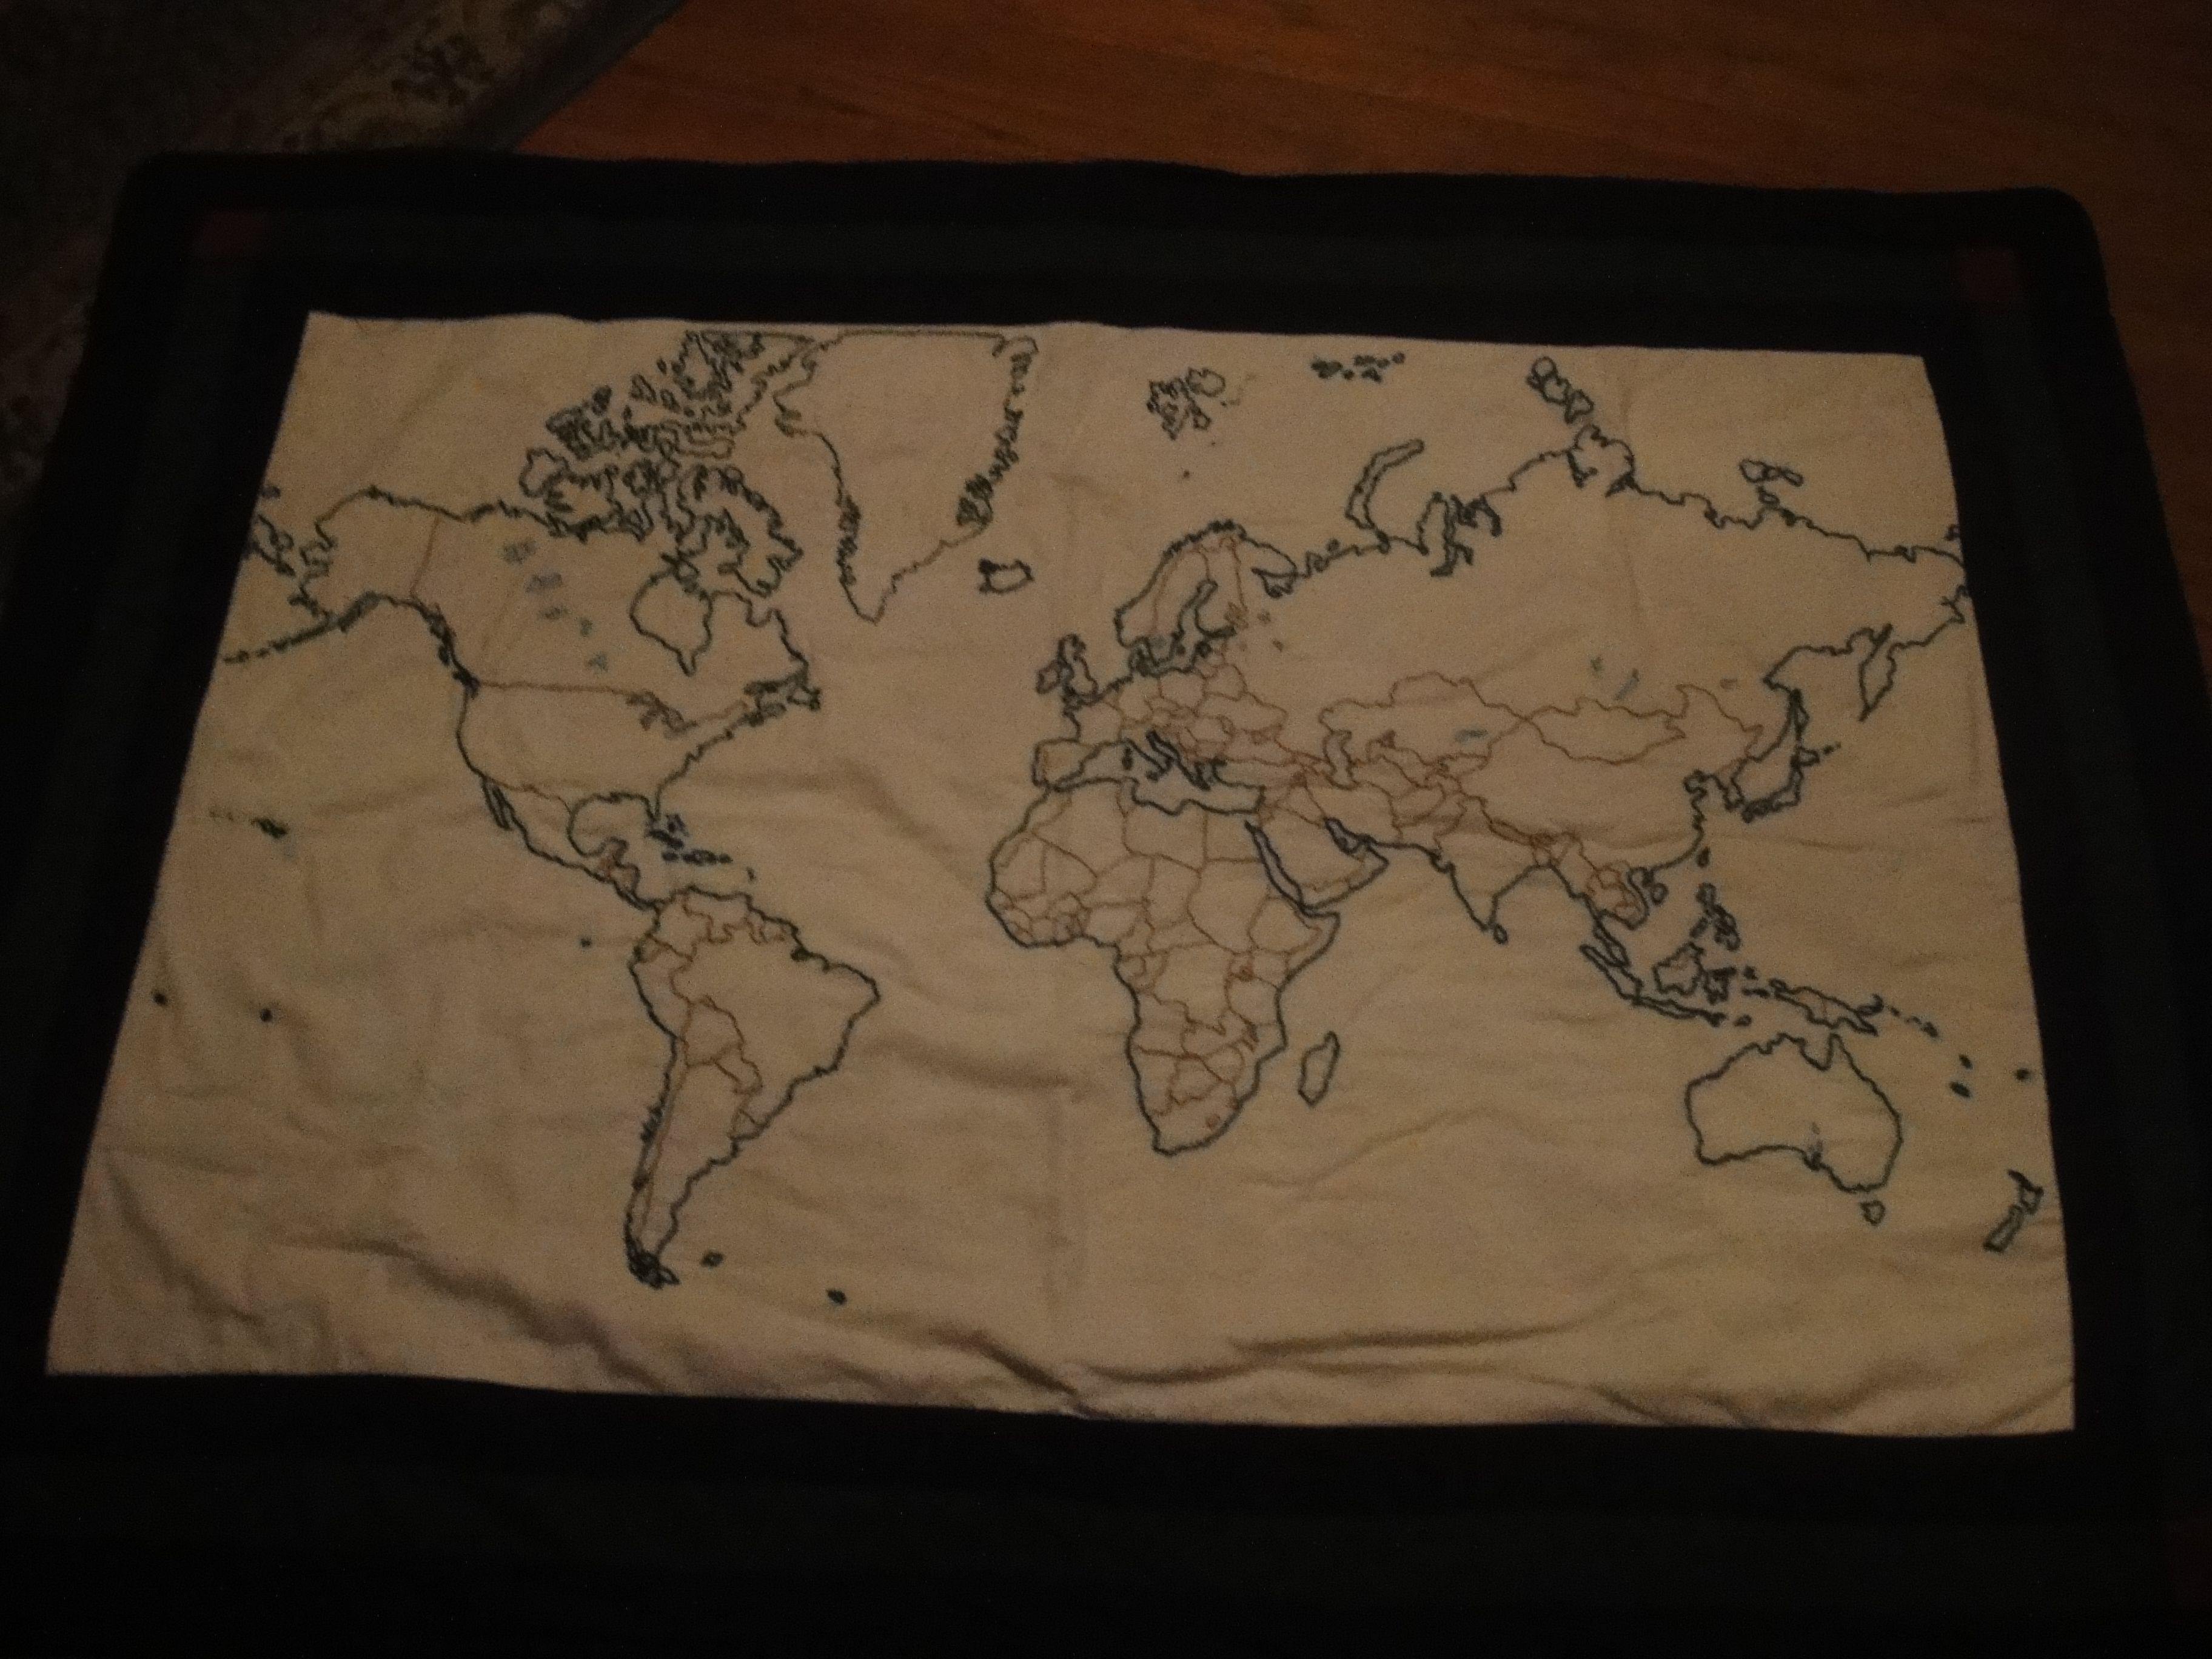 Hand embroidered world map made into a quilt i bought fish deer hand embroidered world map made into a quilt i bought fish deer ducks gumiabroncs Image collections